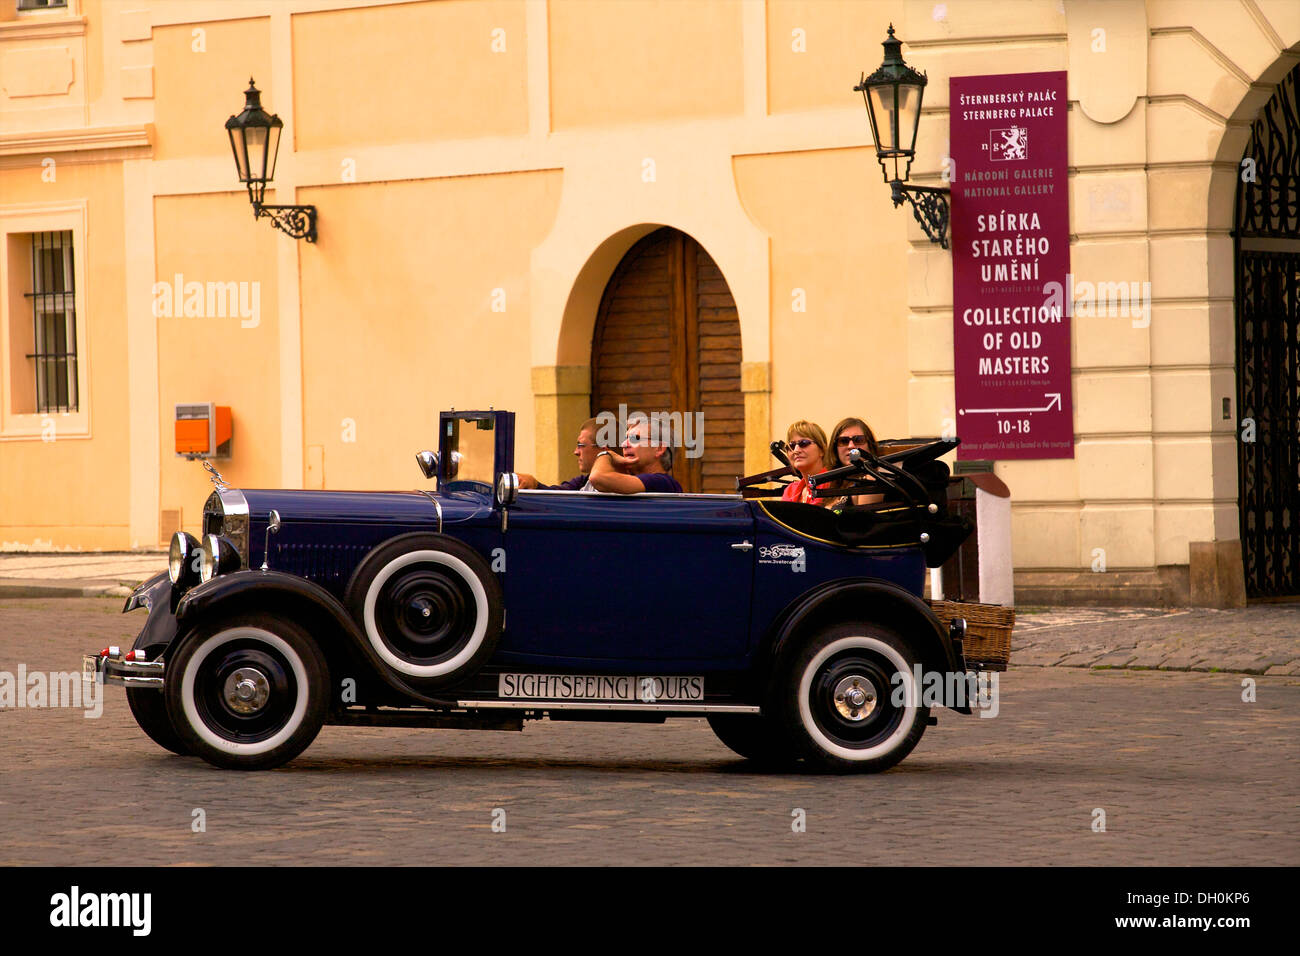 Vintage Car Tour Guide Stock Photos Vintage Car Tour Guide Stock - Classic car guide